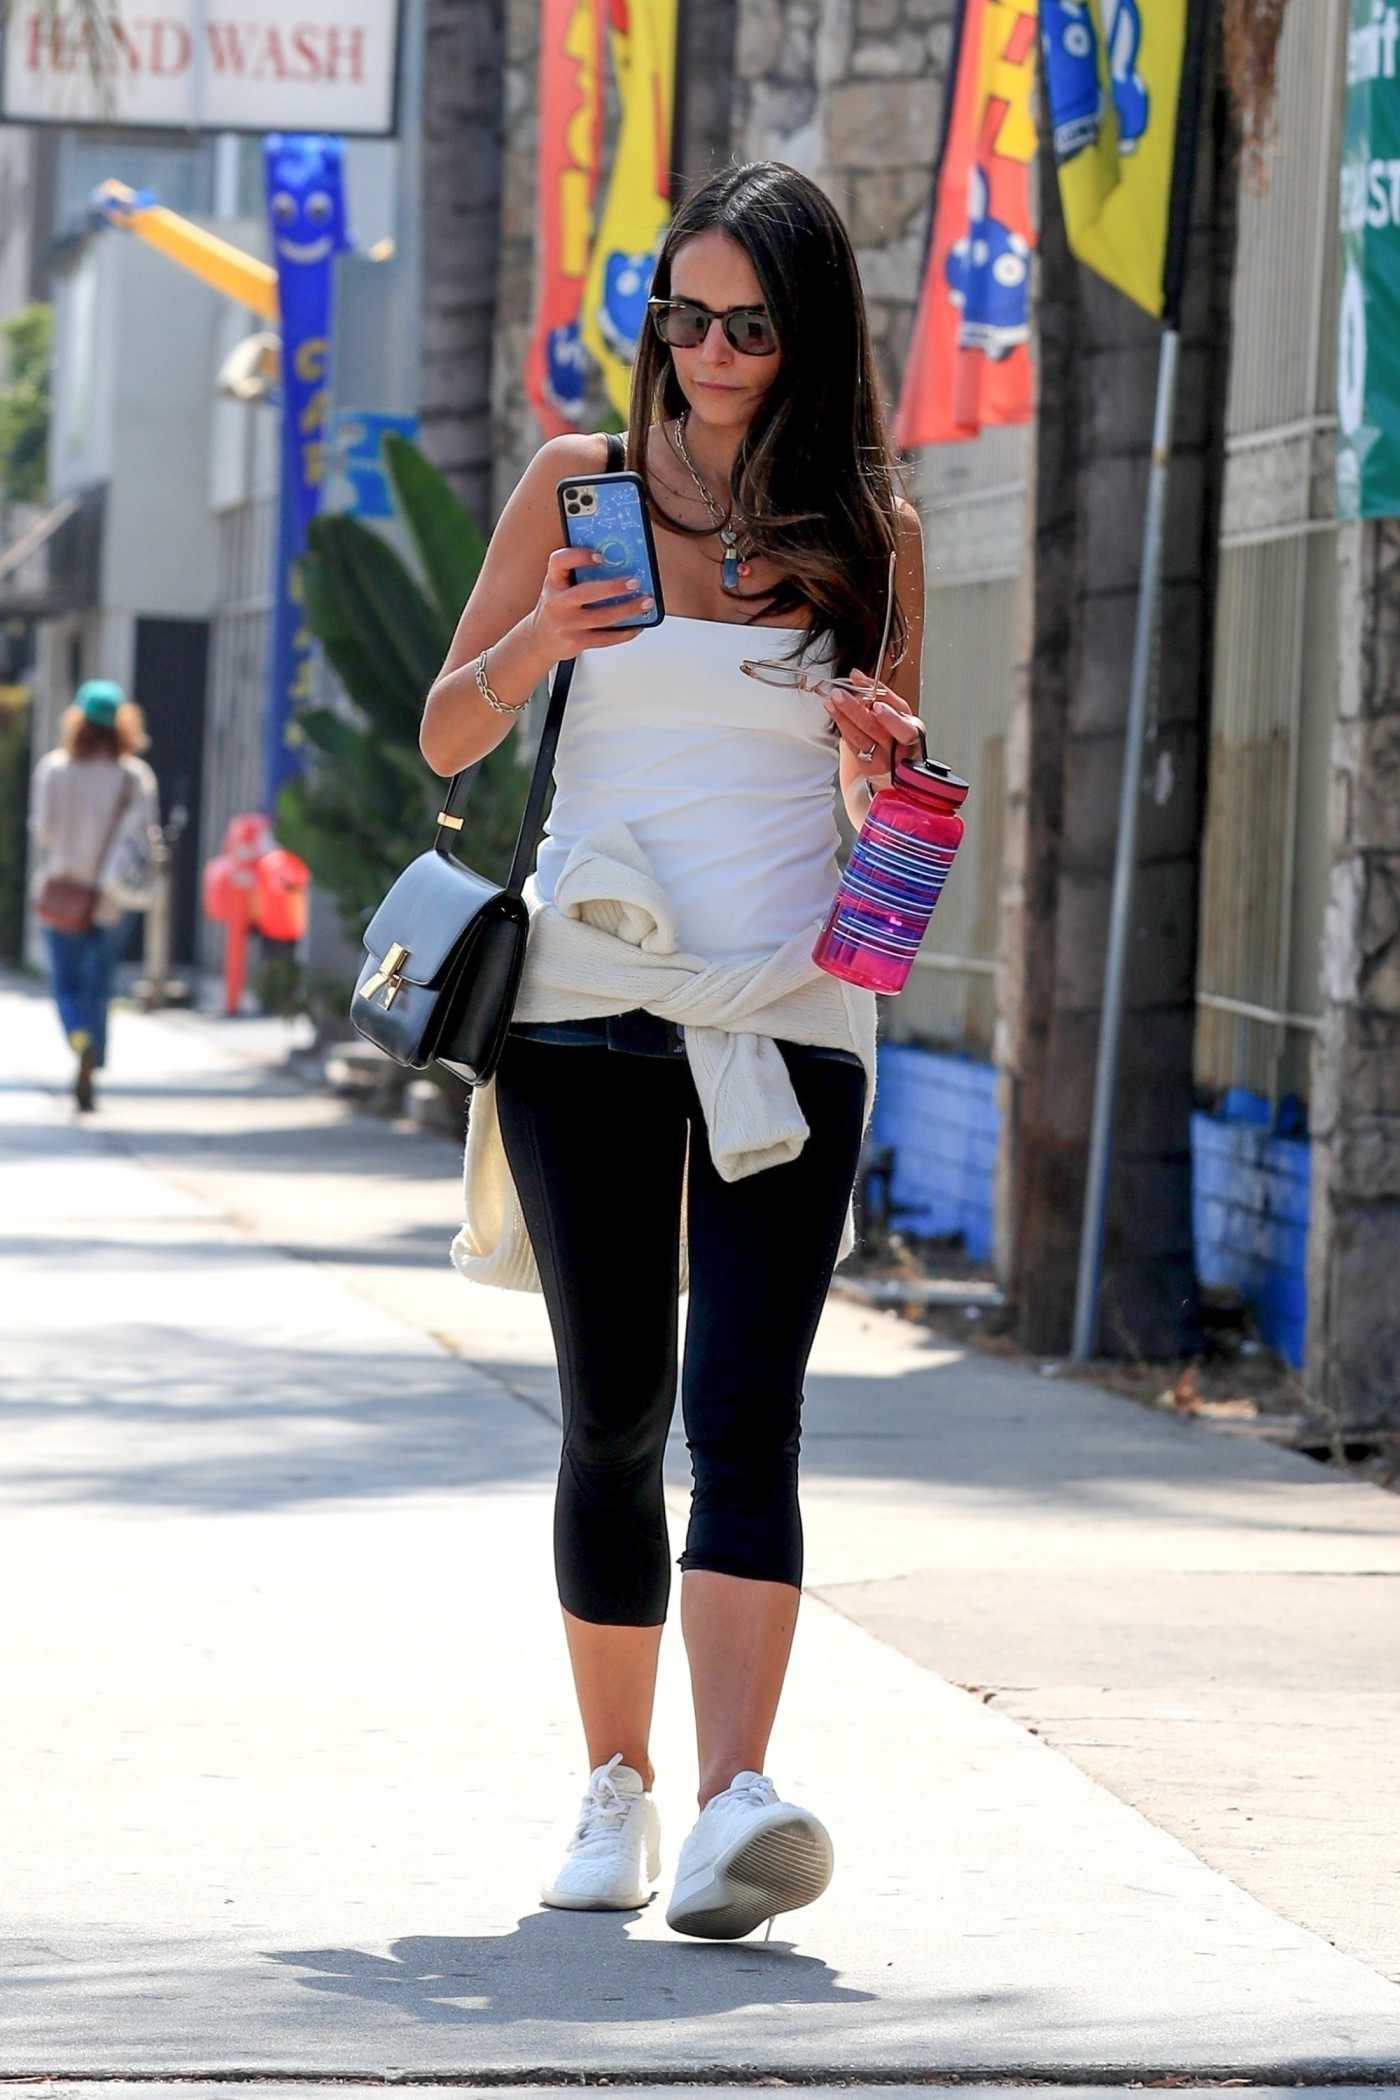 Jordana Brewster in a White Top Goes Shopping in West Hollywood 09/17/2021